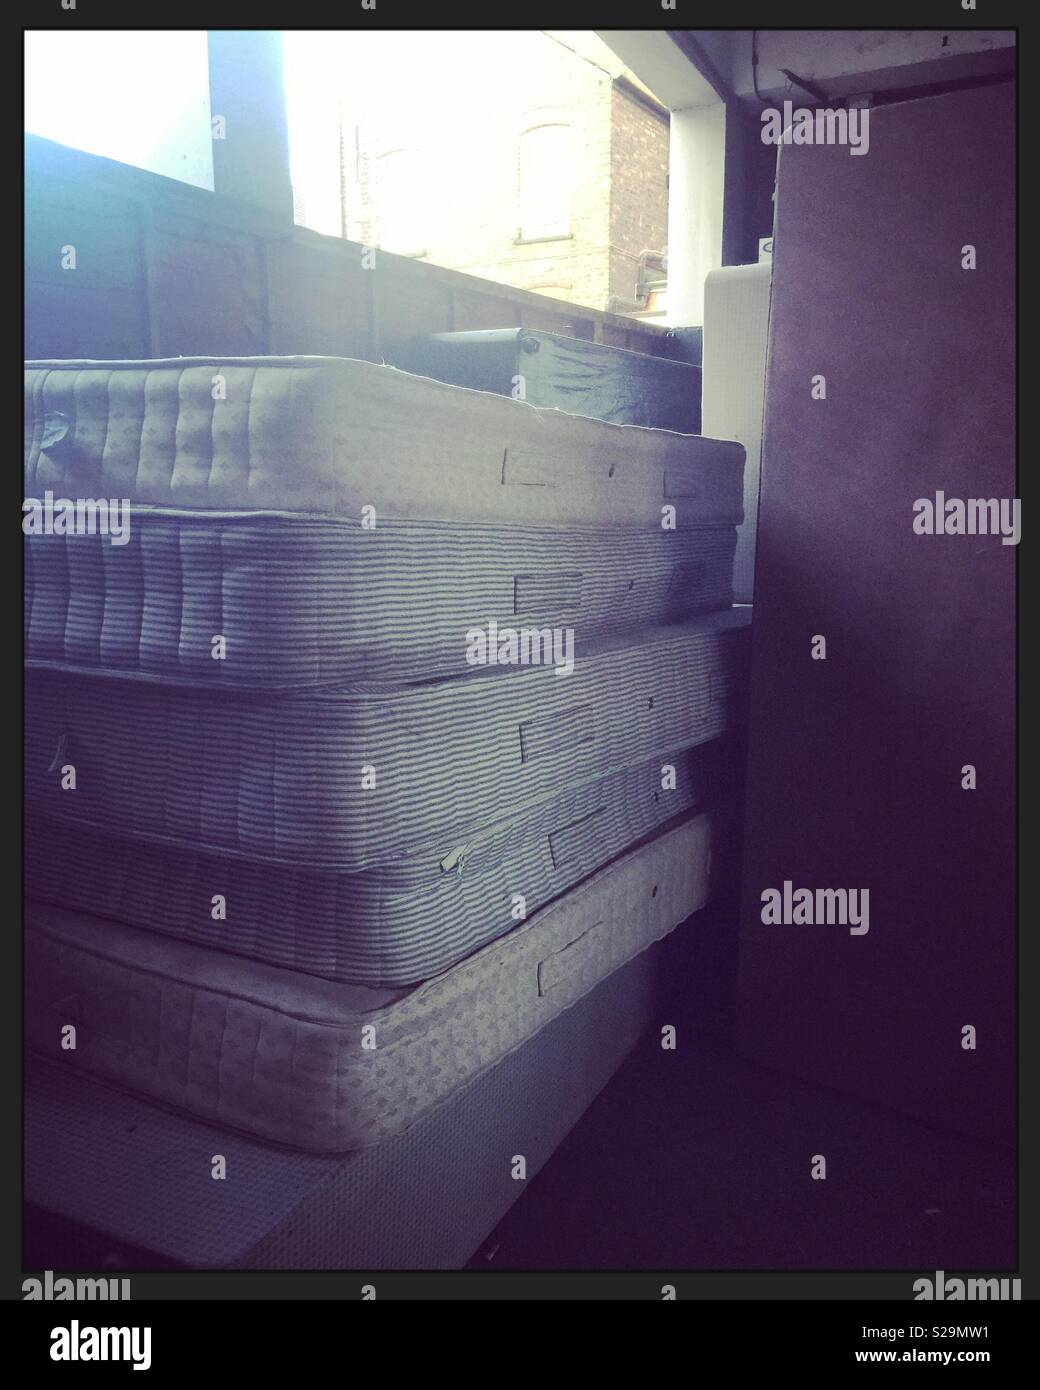 Stacked mattresses at a hotel - Stock Image